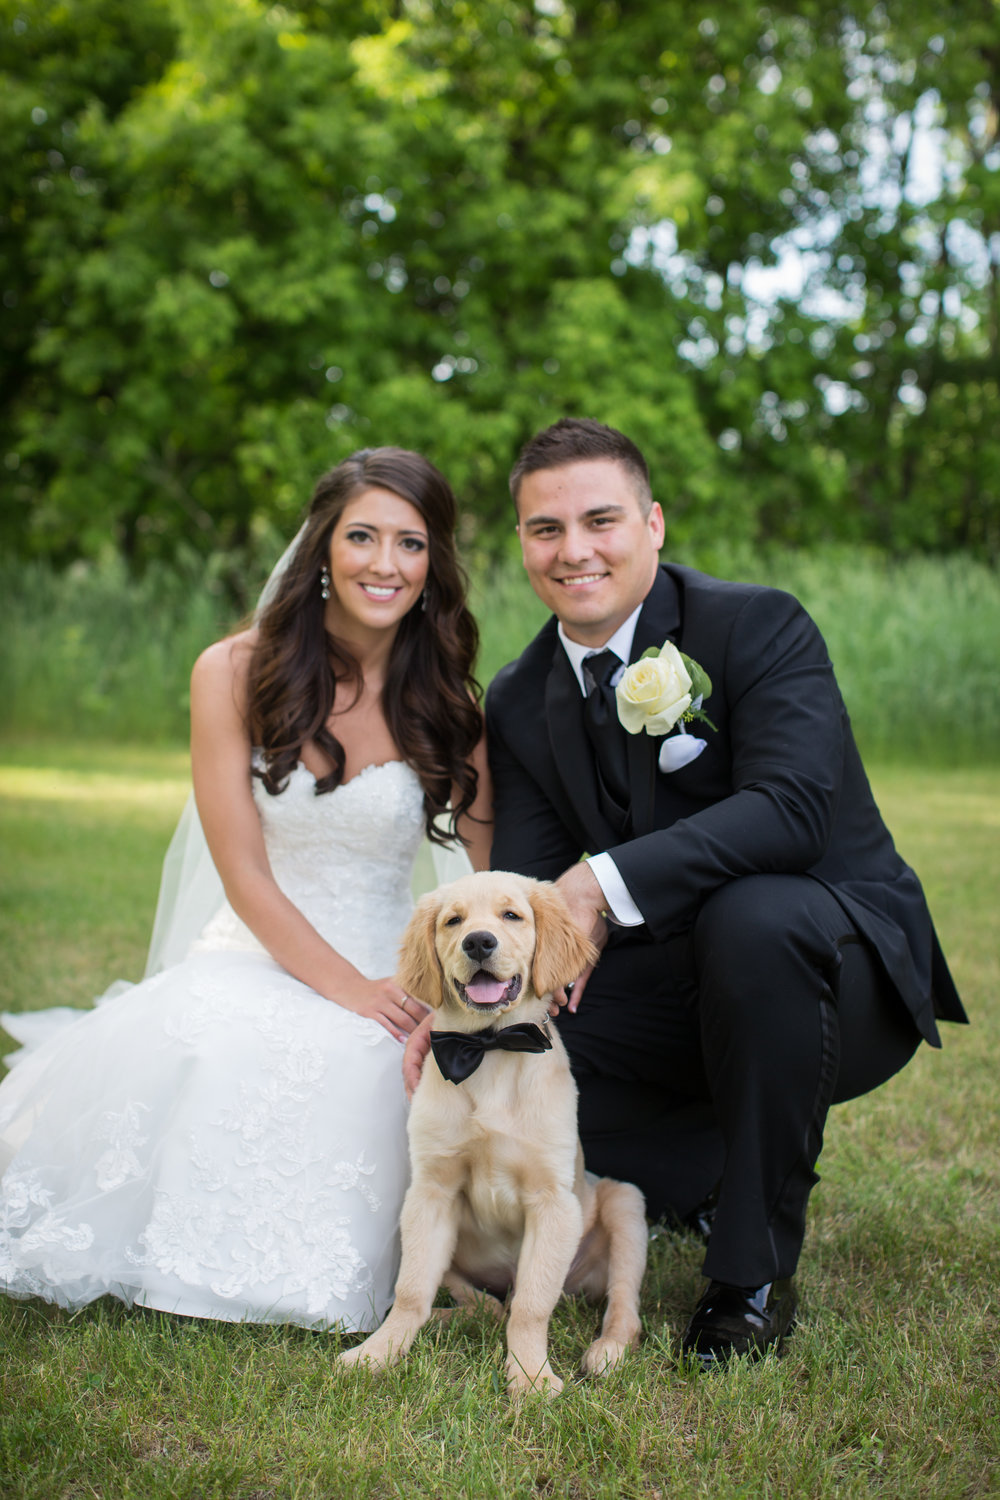 bride and groom with their puppy during wedding pictures